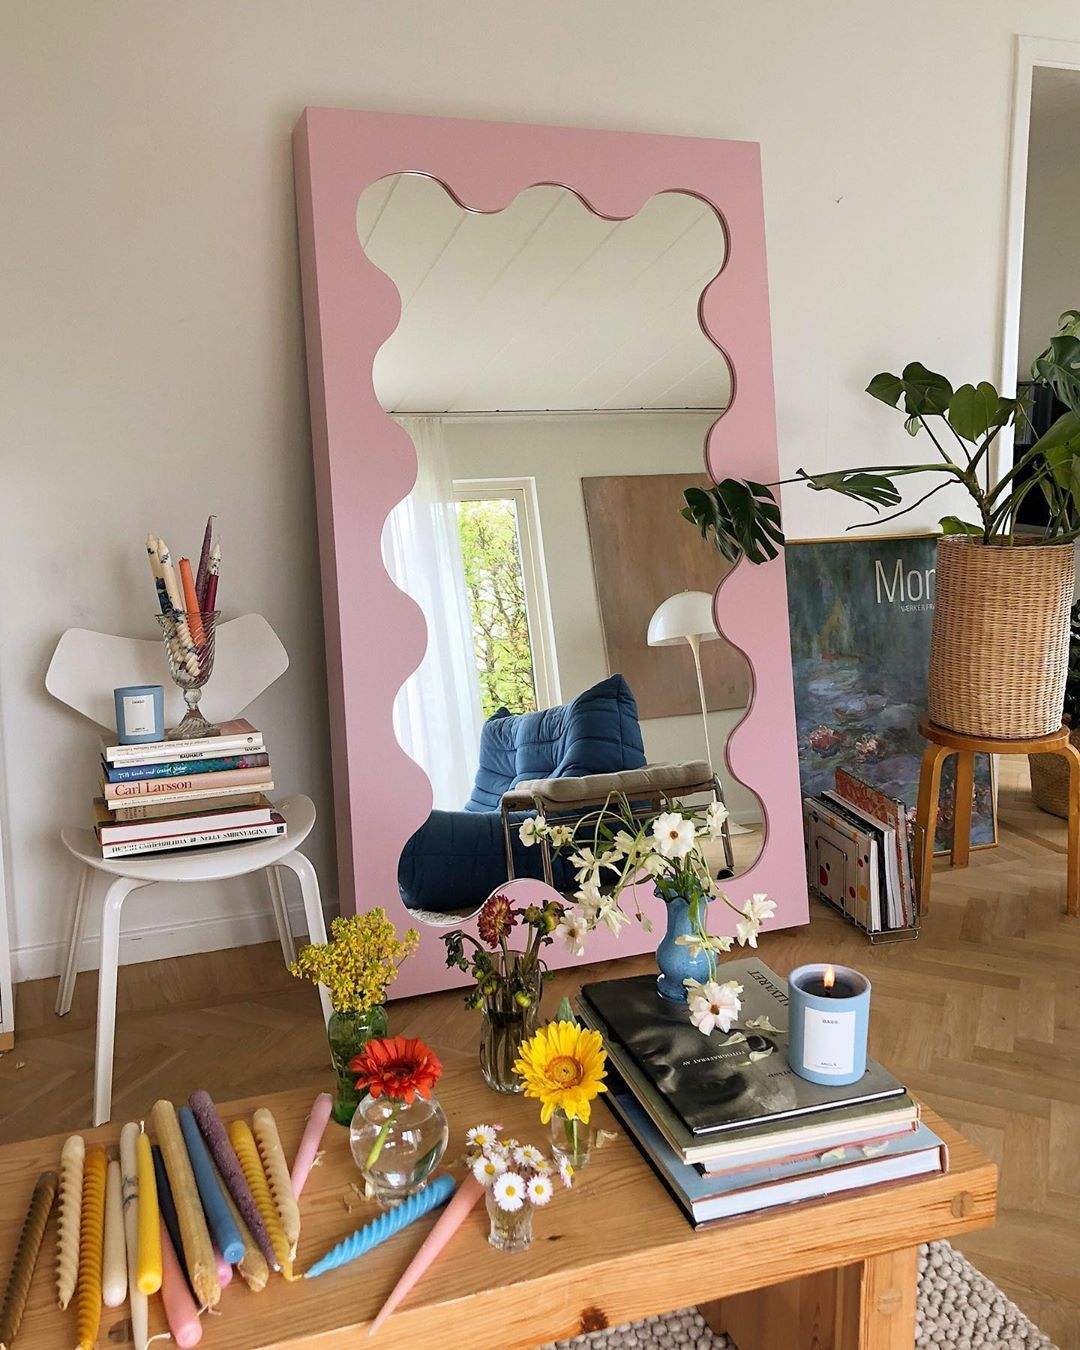 Pin By Jna Blm On 002 Thuis In 2020 Aesthetic Room Decor Danish Decor Pastel Room